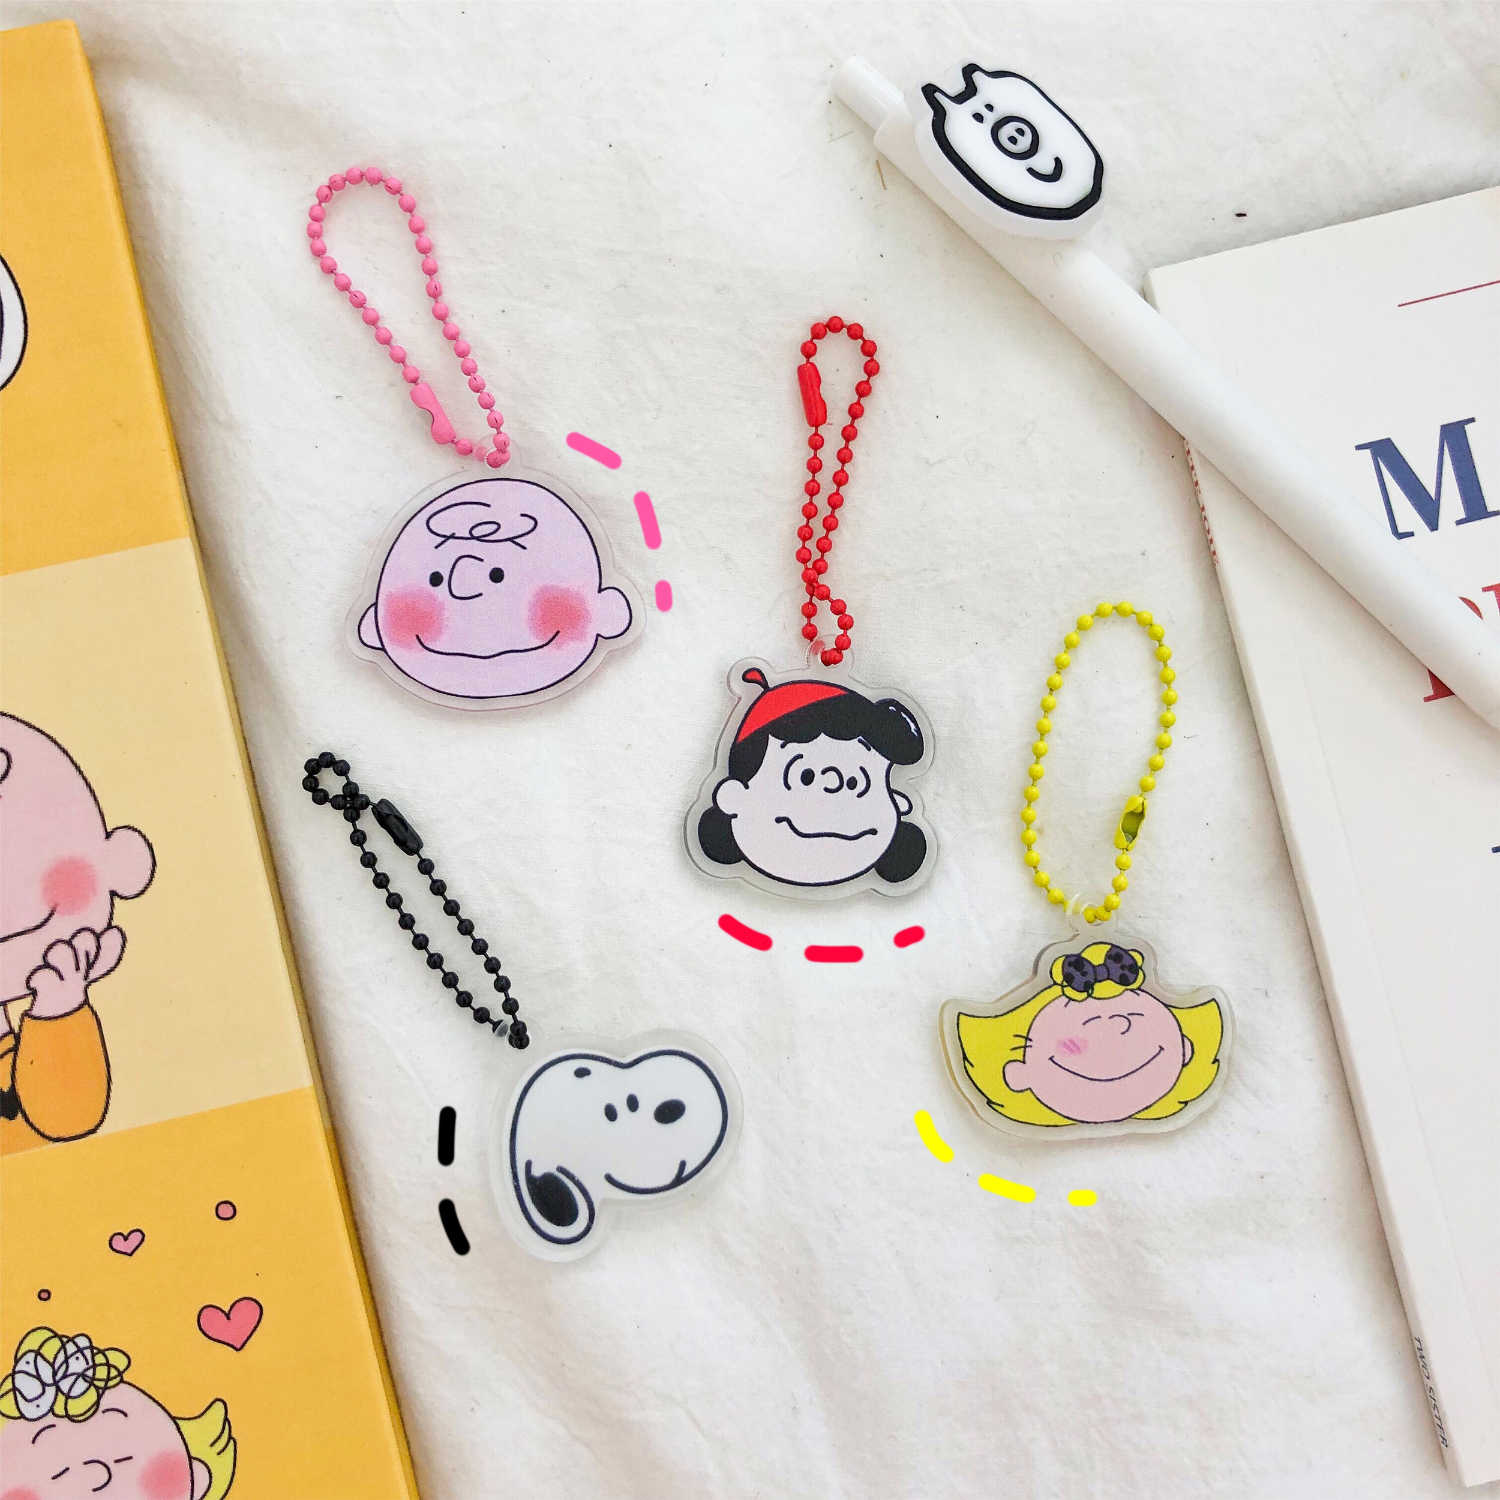 Cute Cartoon Keychain Key Ring Gift For Women Girls Bag Pendant PVC Charms Key Chains